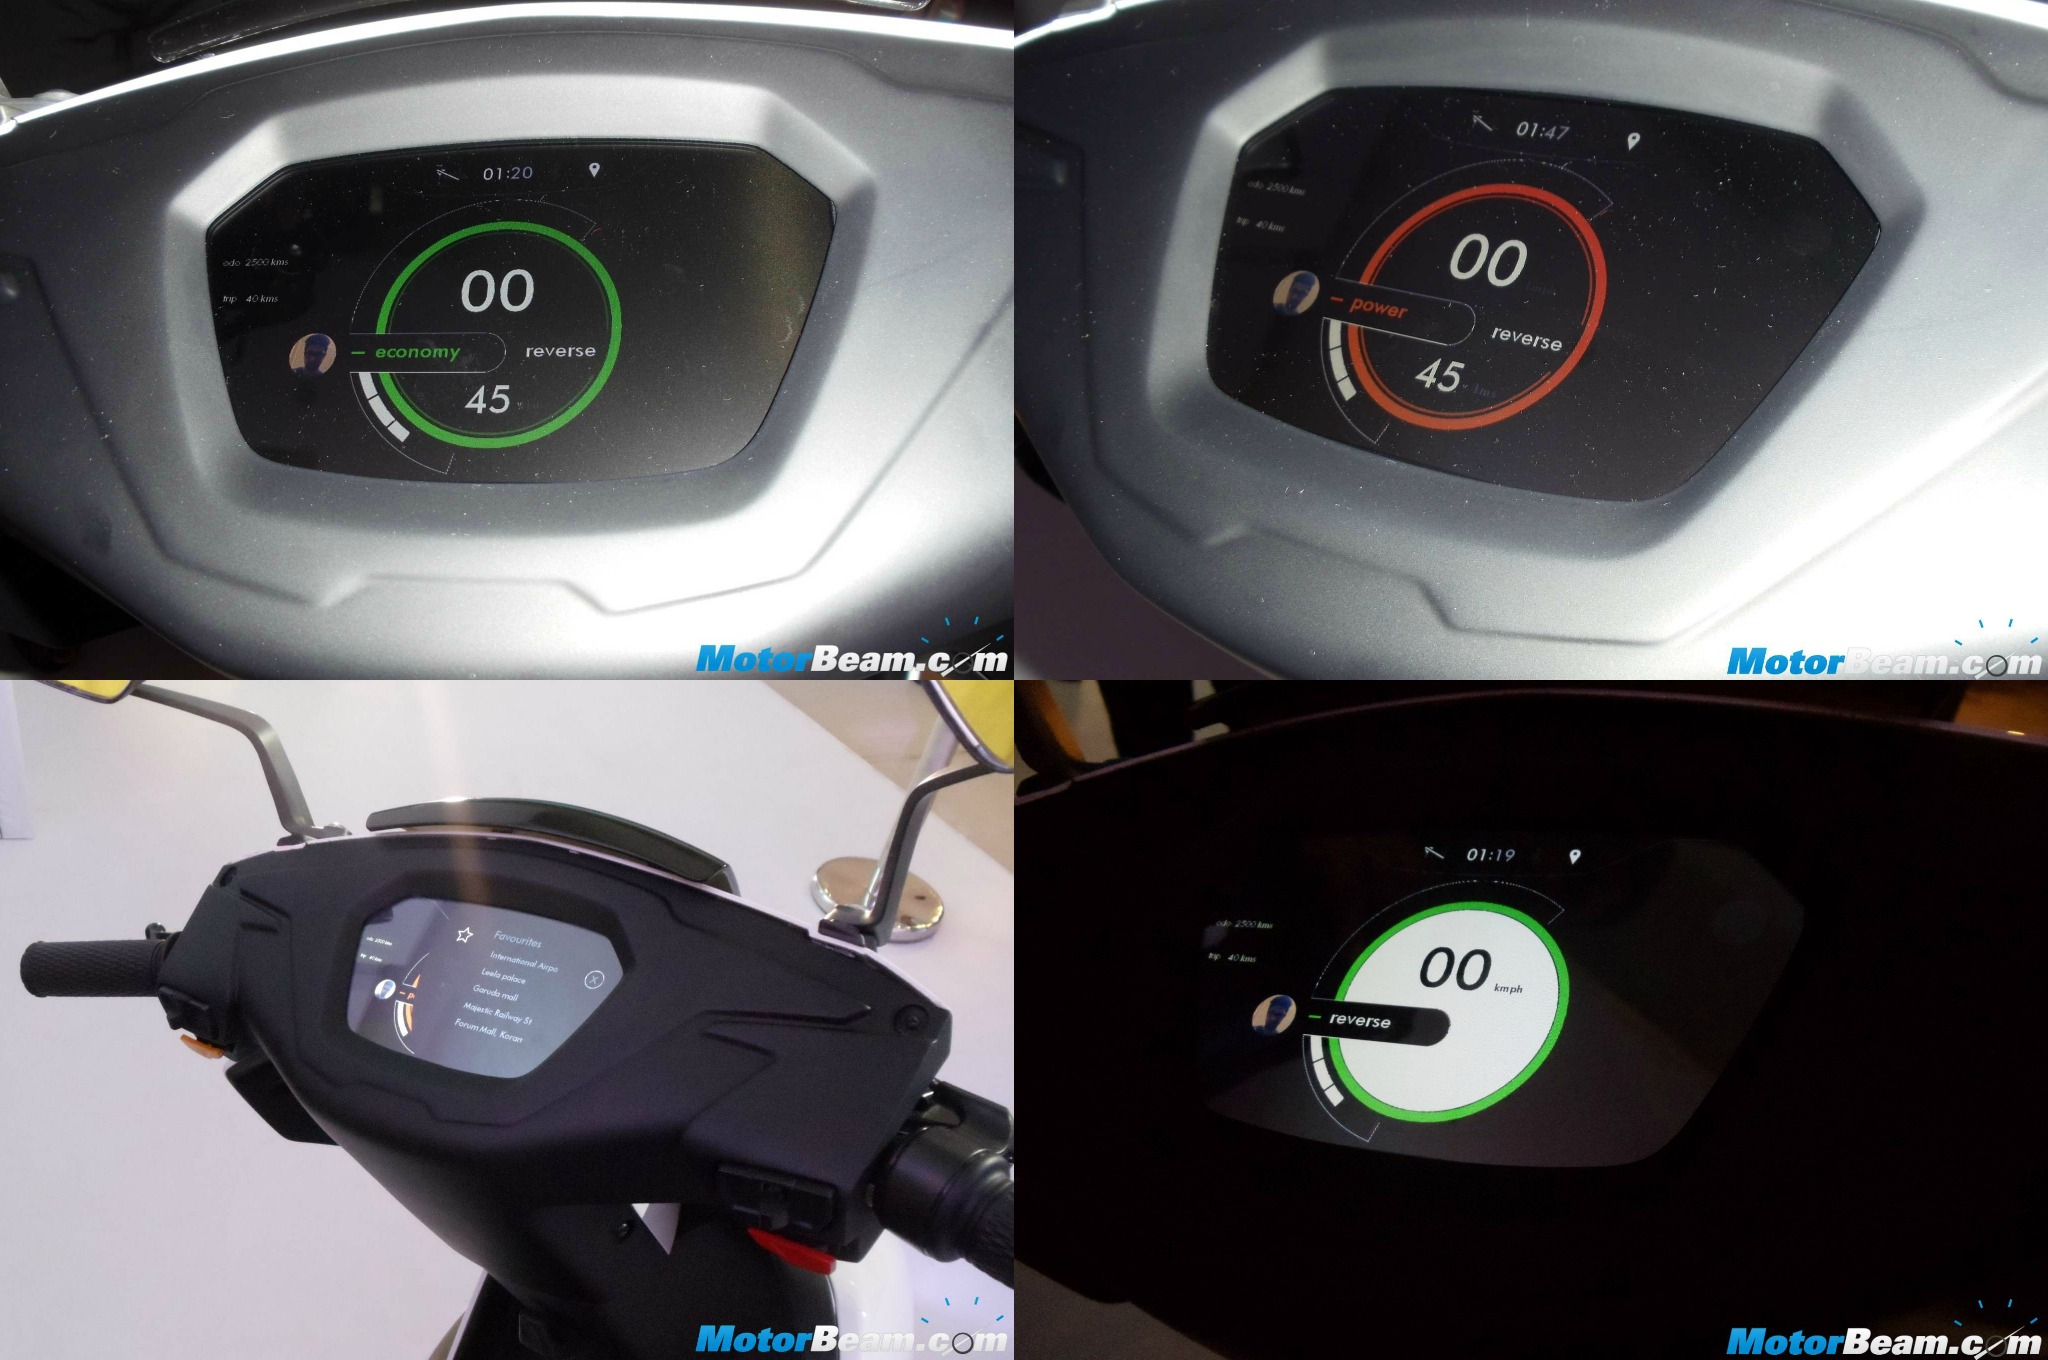 Ather S340 Dashboard